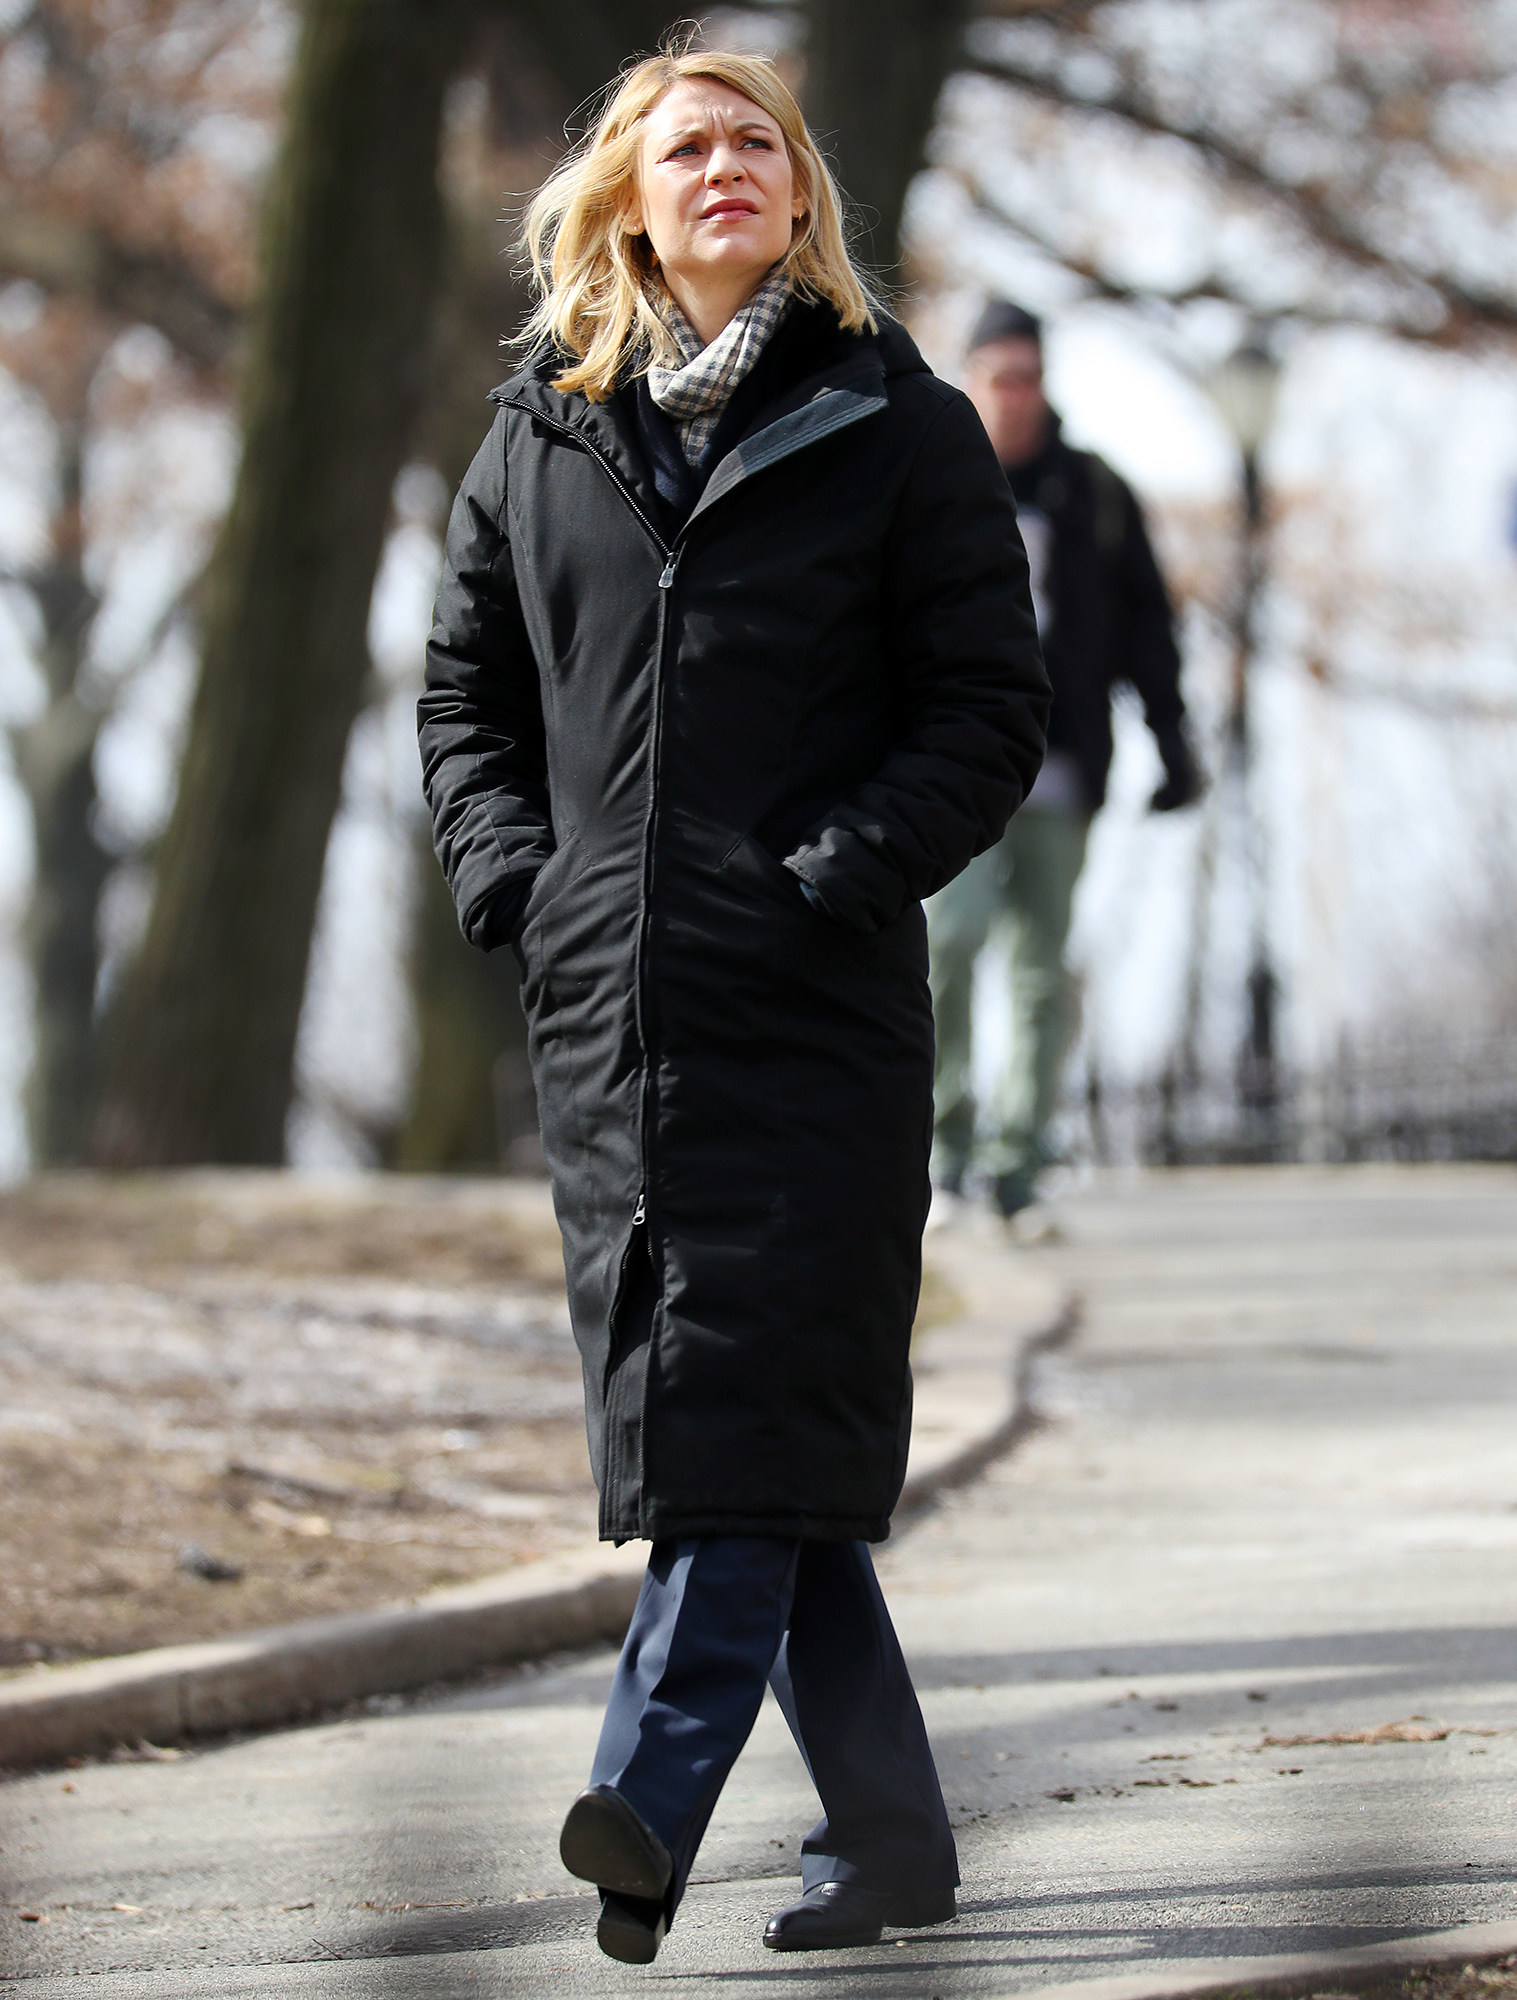 EXCLUSIVE: Claire Danes Is Spotted on the Set of 'Homeland'